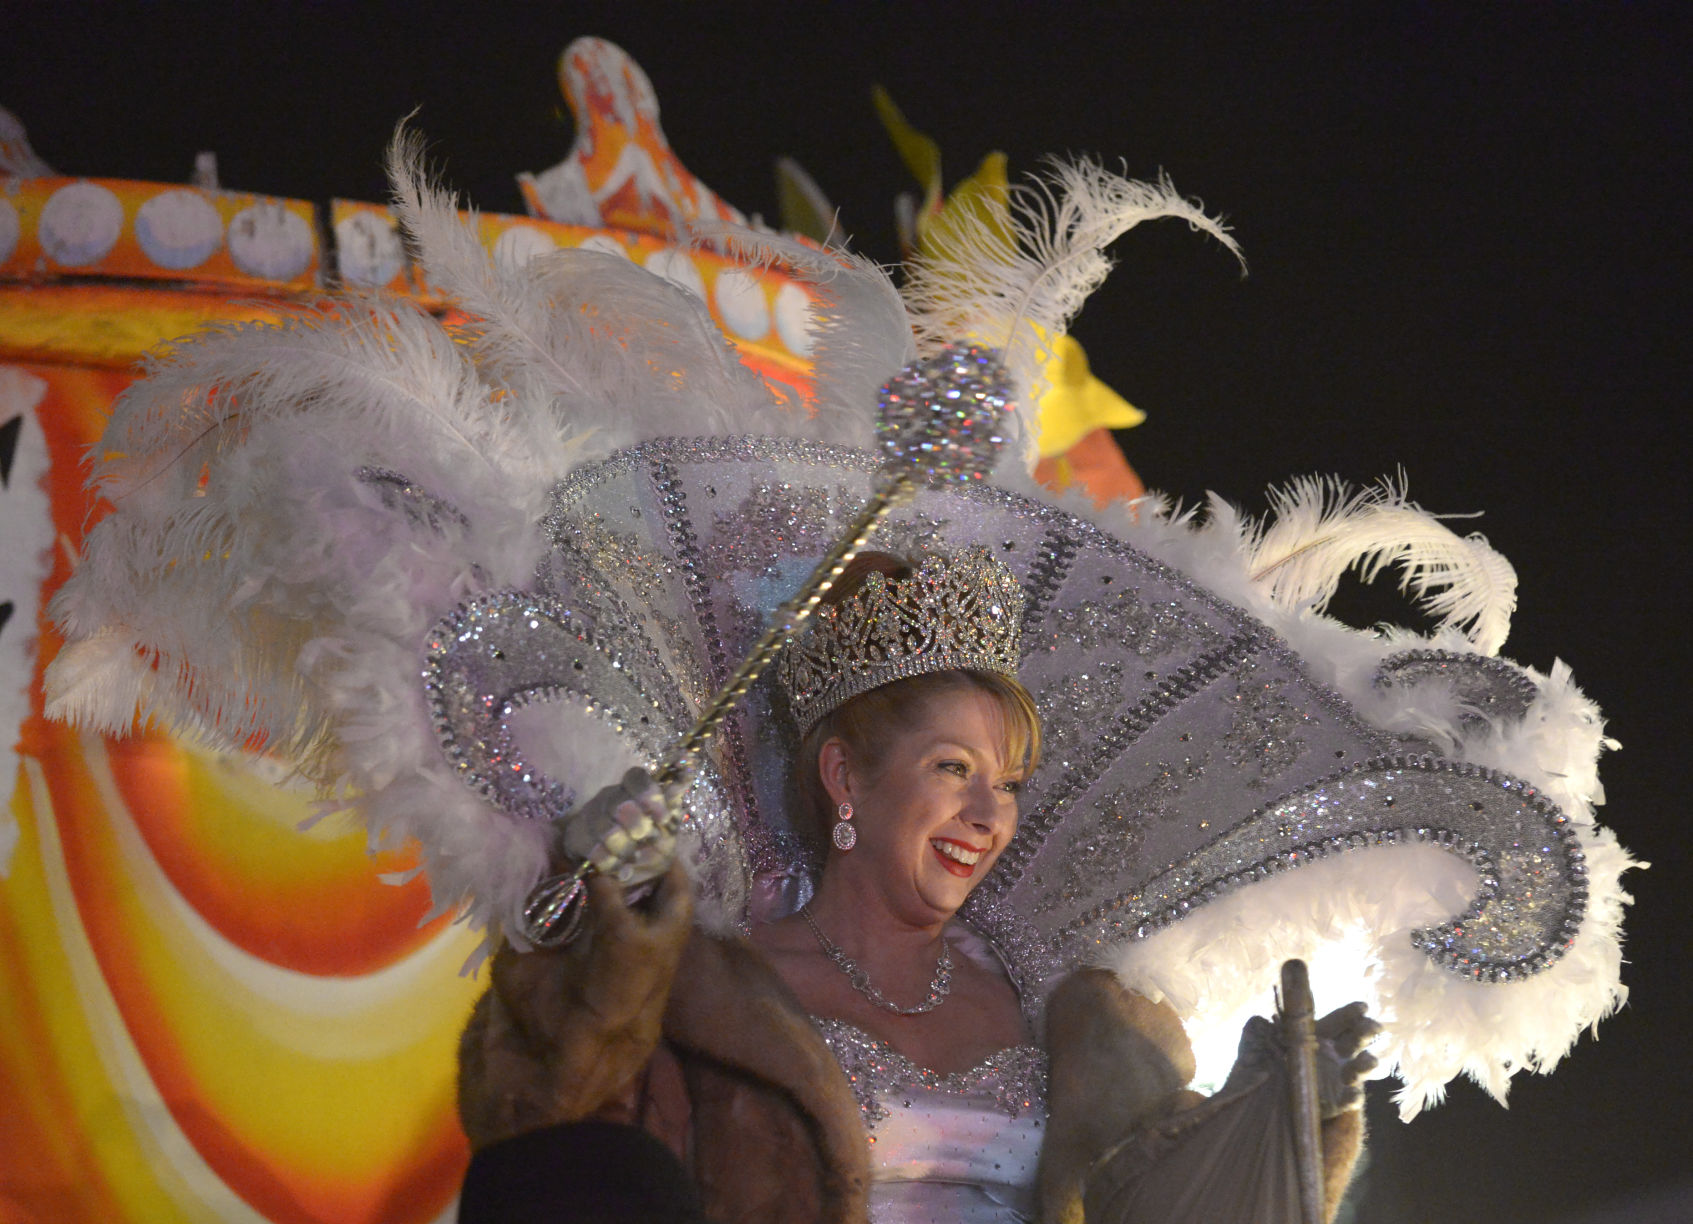 Just what will the weather be for Mardi Gras? How about July 4th? We consulted 'The Old Farmer's Almanac' for answers